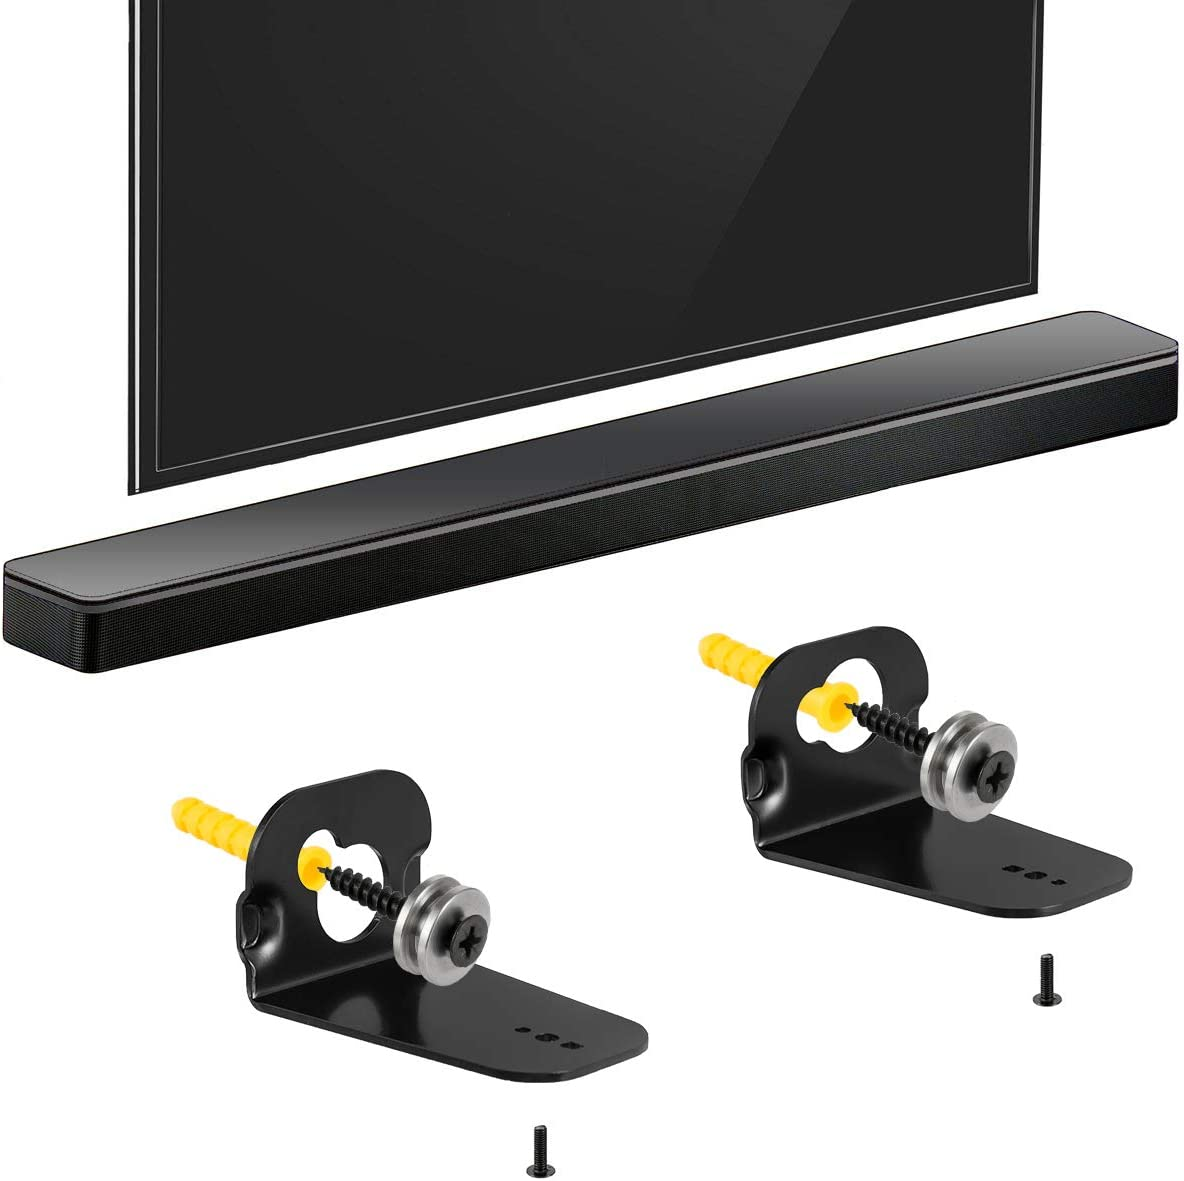 Loyeen Pair Soundbar Wall Mount Bracket for Samsung HW-M360 HW-K550 HW-M550 HW-K650 HW-K430 HW-K335 HW-K651 HW-K450 AH61-04106A Sound bar Speaker Come with Mounting Screws Accessories